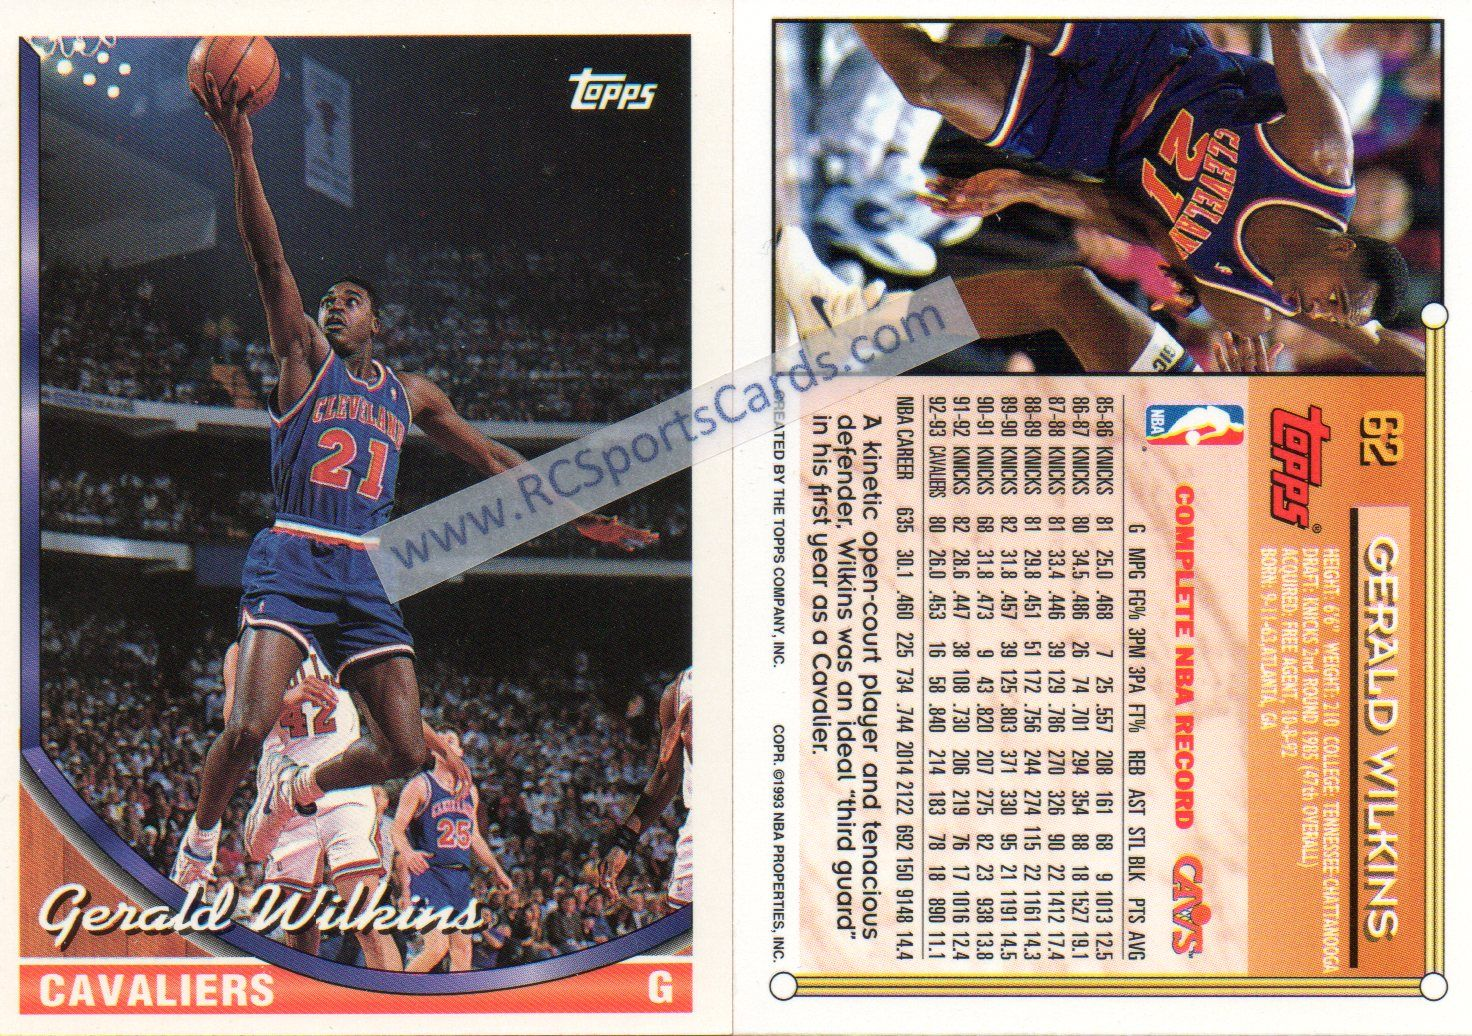 1993 94 Gerald Wilkins Cavaliers Basketball cards at